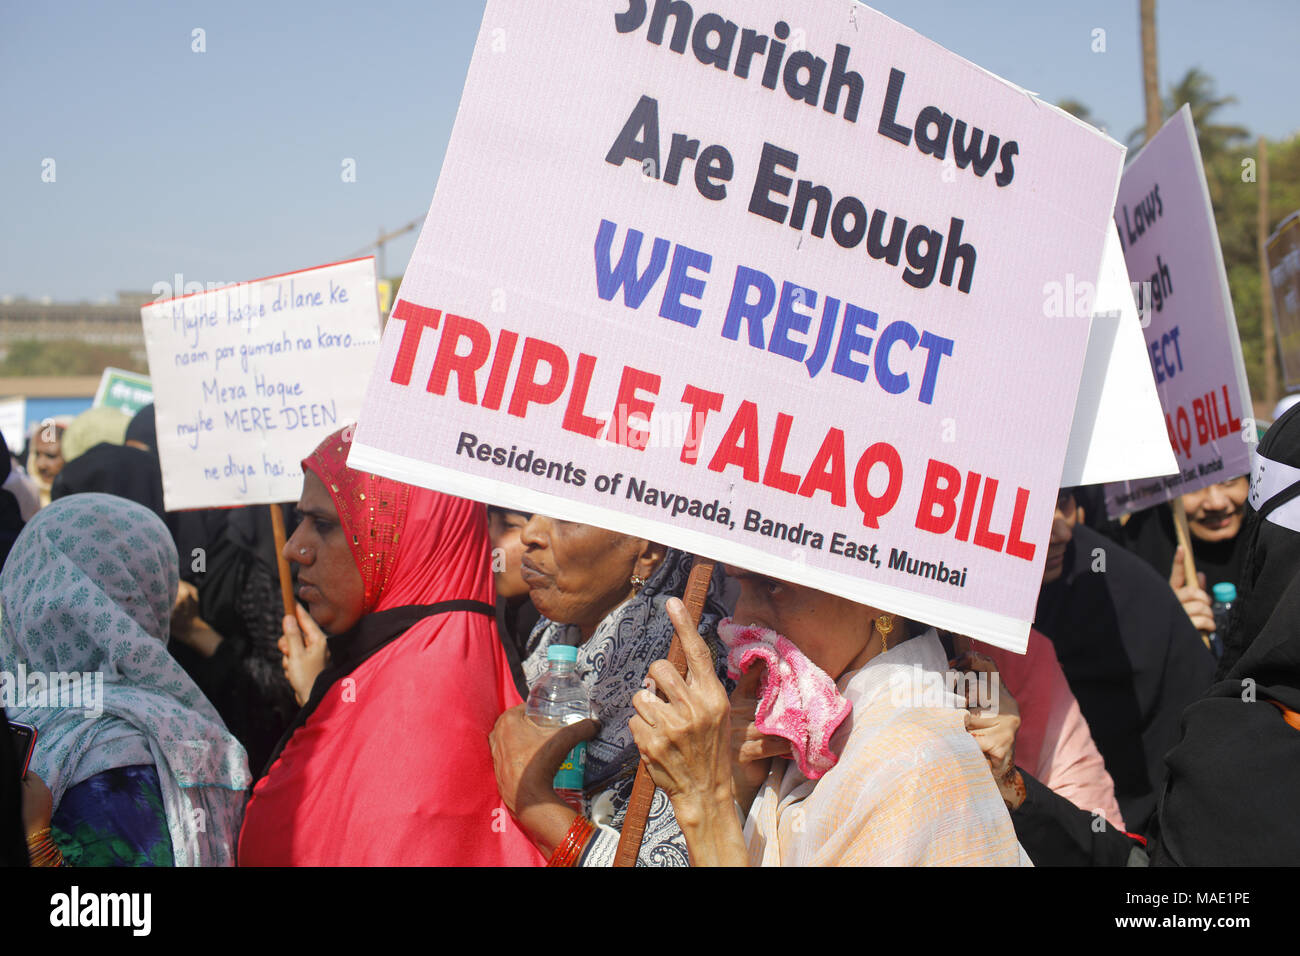 Mumbai, India. 31st Mar, 2018. Thousands of Muslim women attired in the black Burqa staged a Protest march at Azad Maidan, demanding withdrawal of the bill banning 'Triple Talaq' passed by Lok Sabha last December 2017.Organised by the All India Muslim Personal Law Board's (AIMPLB) Women Wing, and described as the ''first, exclusive Muslim women's protest rejecting the Bill and supporting the Sharia Laws'' it elicited huge response from Muslim women across the country. The women carried placards loudly proclaiming their demands with slogans opposing the M - Stock Image